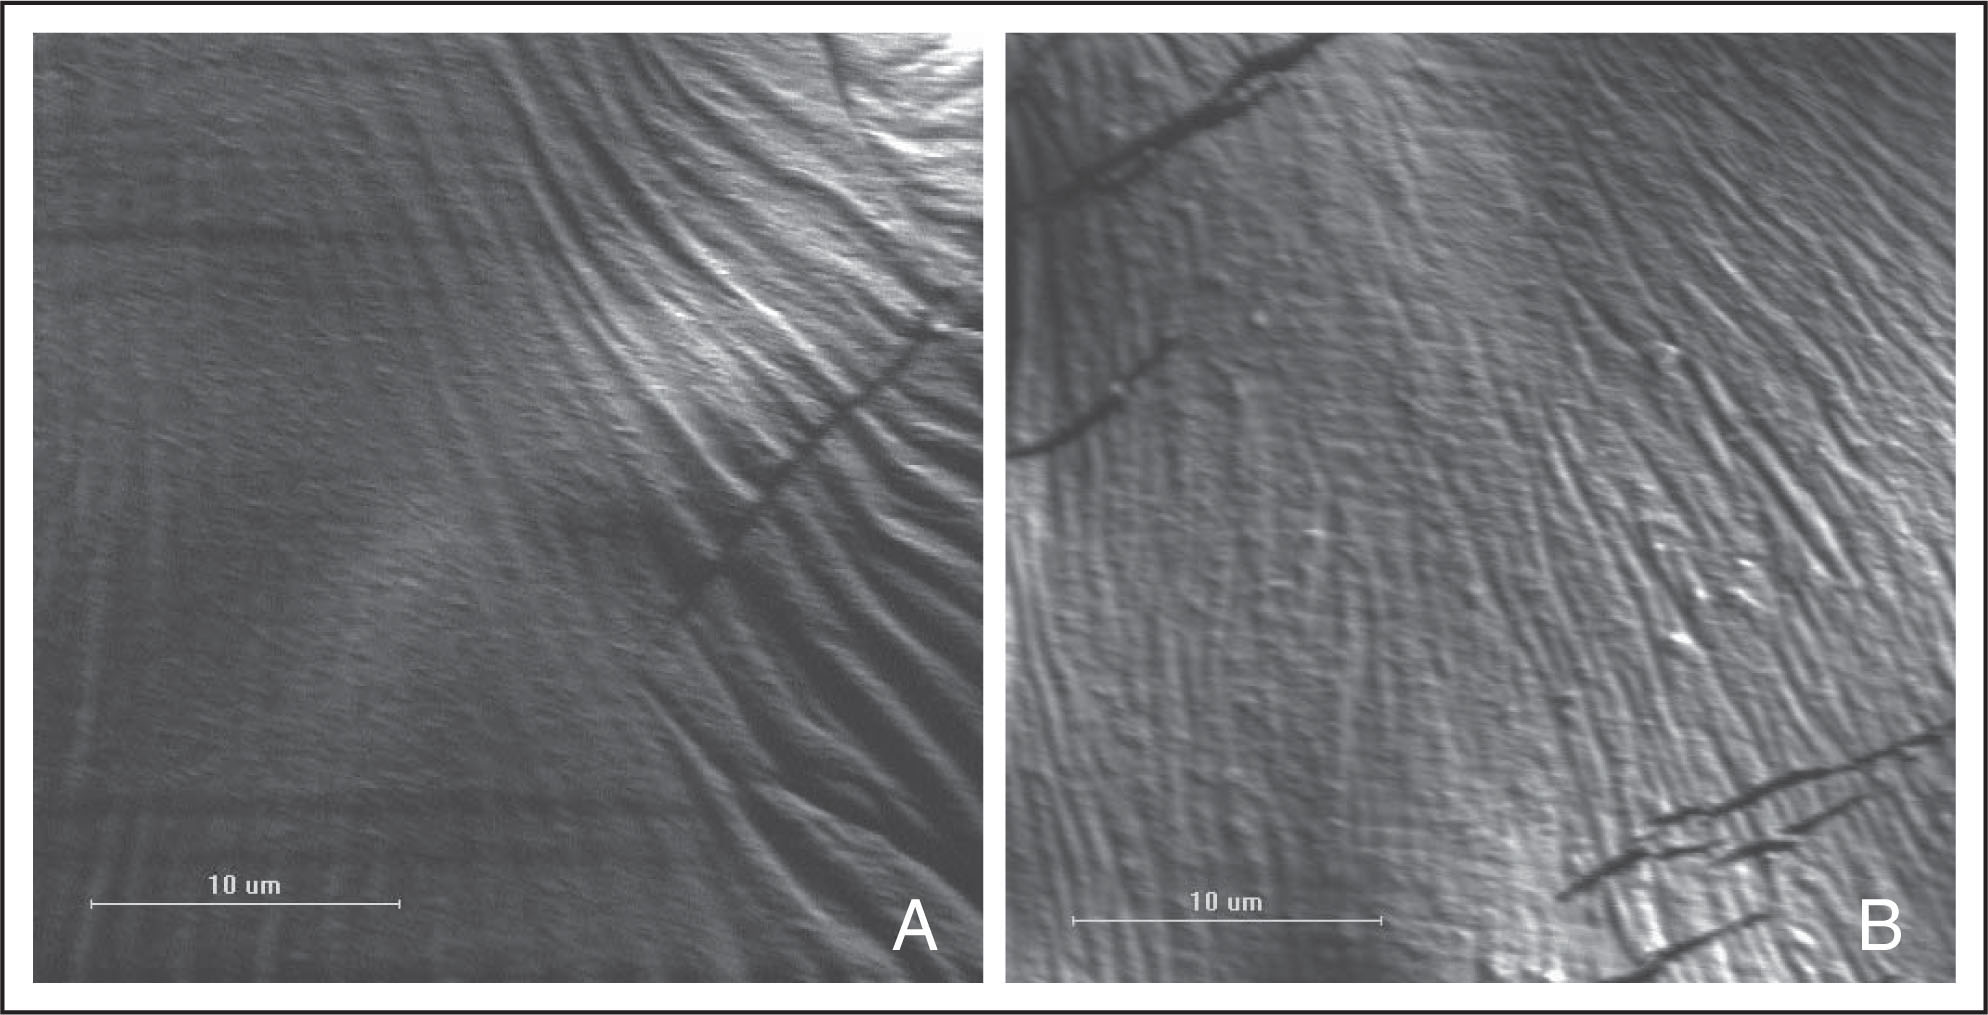 Scanning electron micrographs showing the ultrastructurally normal anterior lens capsular surface in the control group.